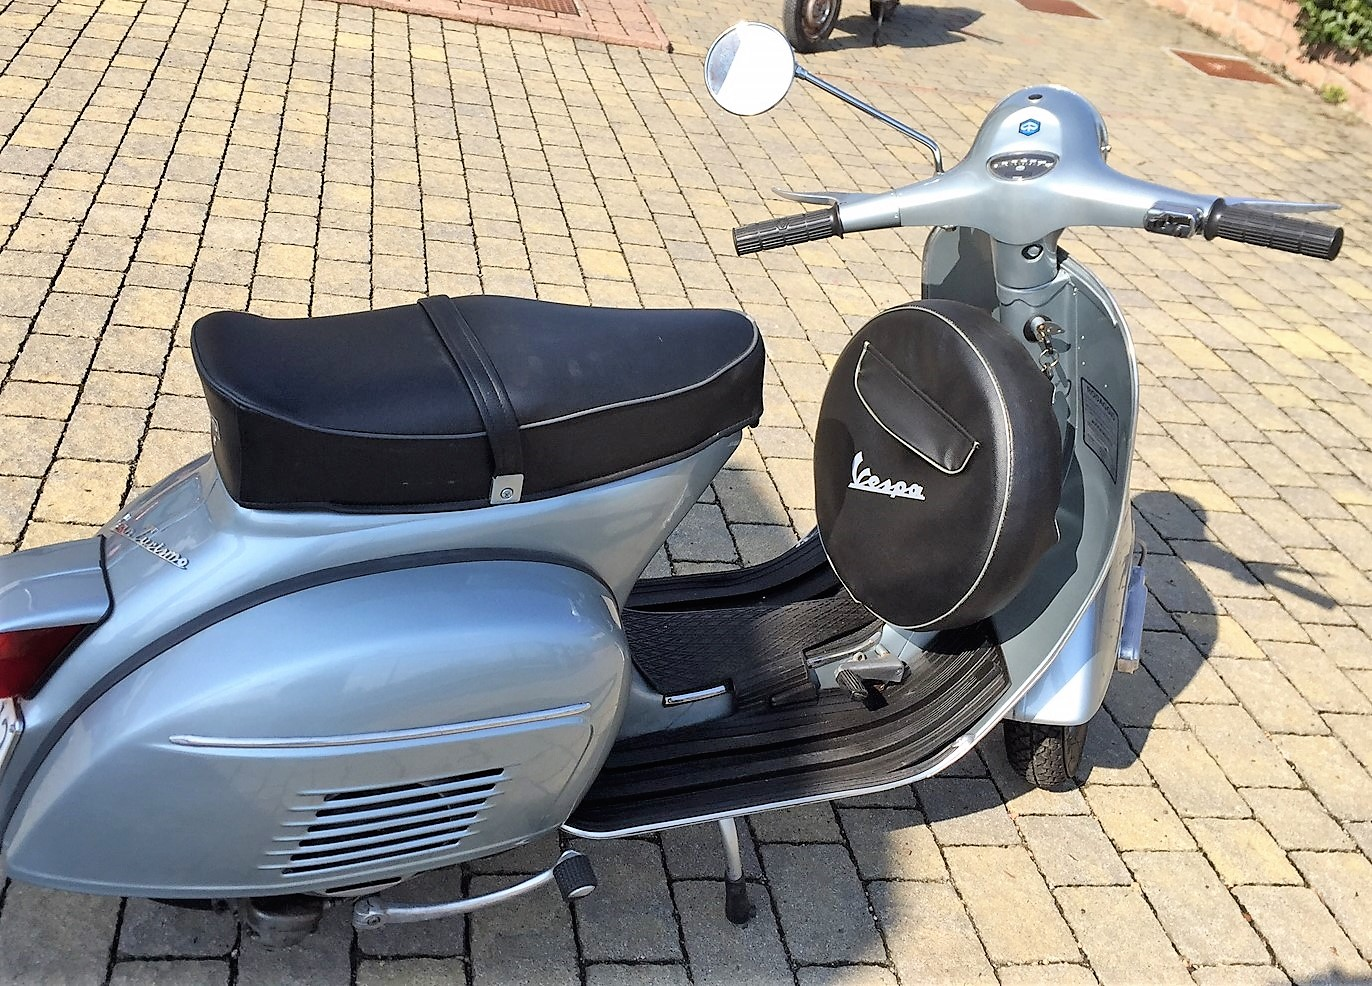 Vespa 200 Rally Colors Part 2 Some Electric Auto Electrical 50 Elestart Model V5a3t Wiring Diagram All About Diagrams 1969 125 Gtr U2013 Newly Restored